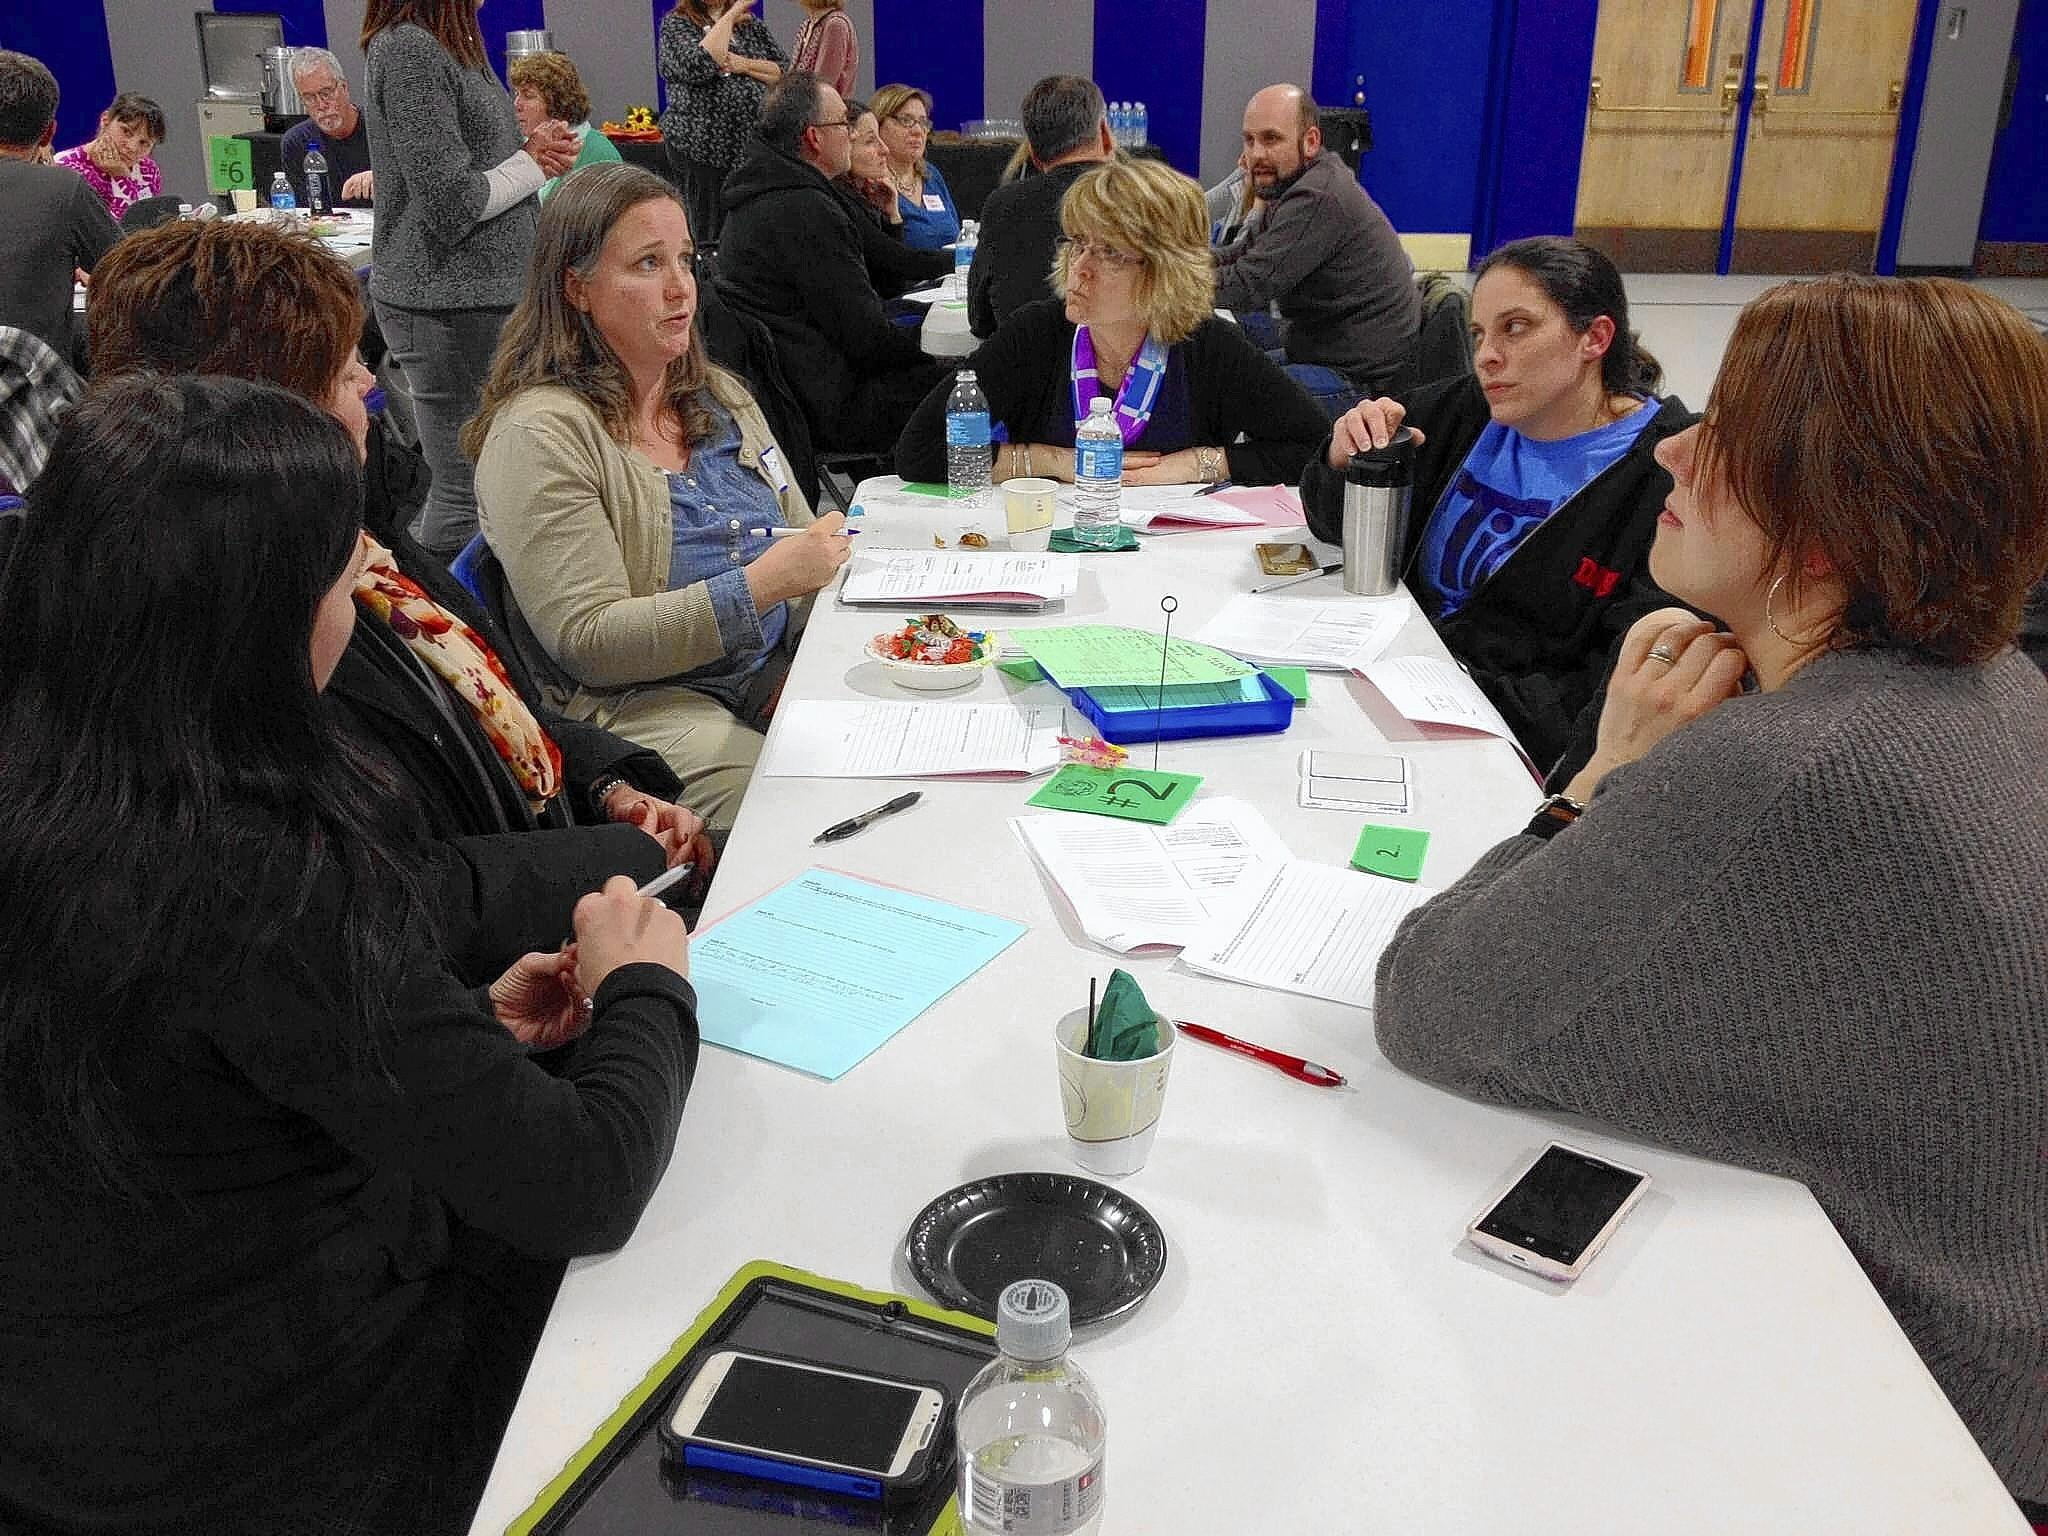 Parents and faculty at Richmond and Davis schools focused on new assessments for math based on conceptual learning at a forum last month.